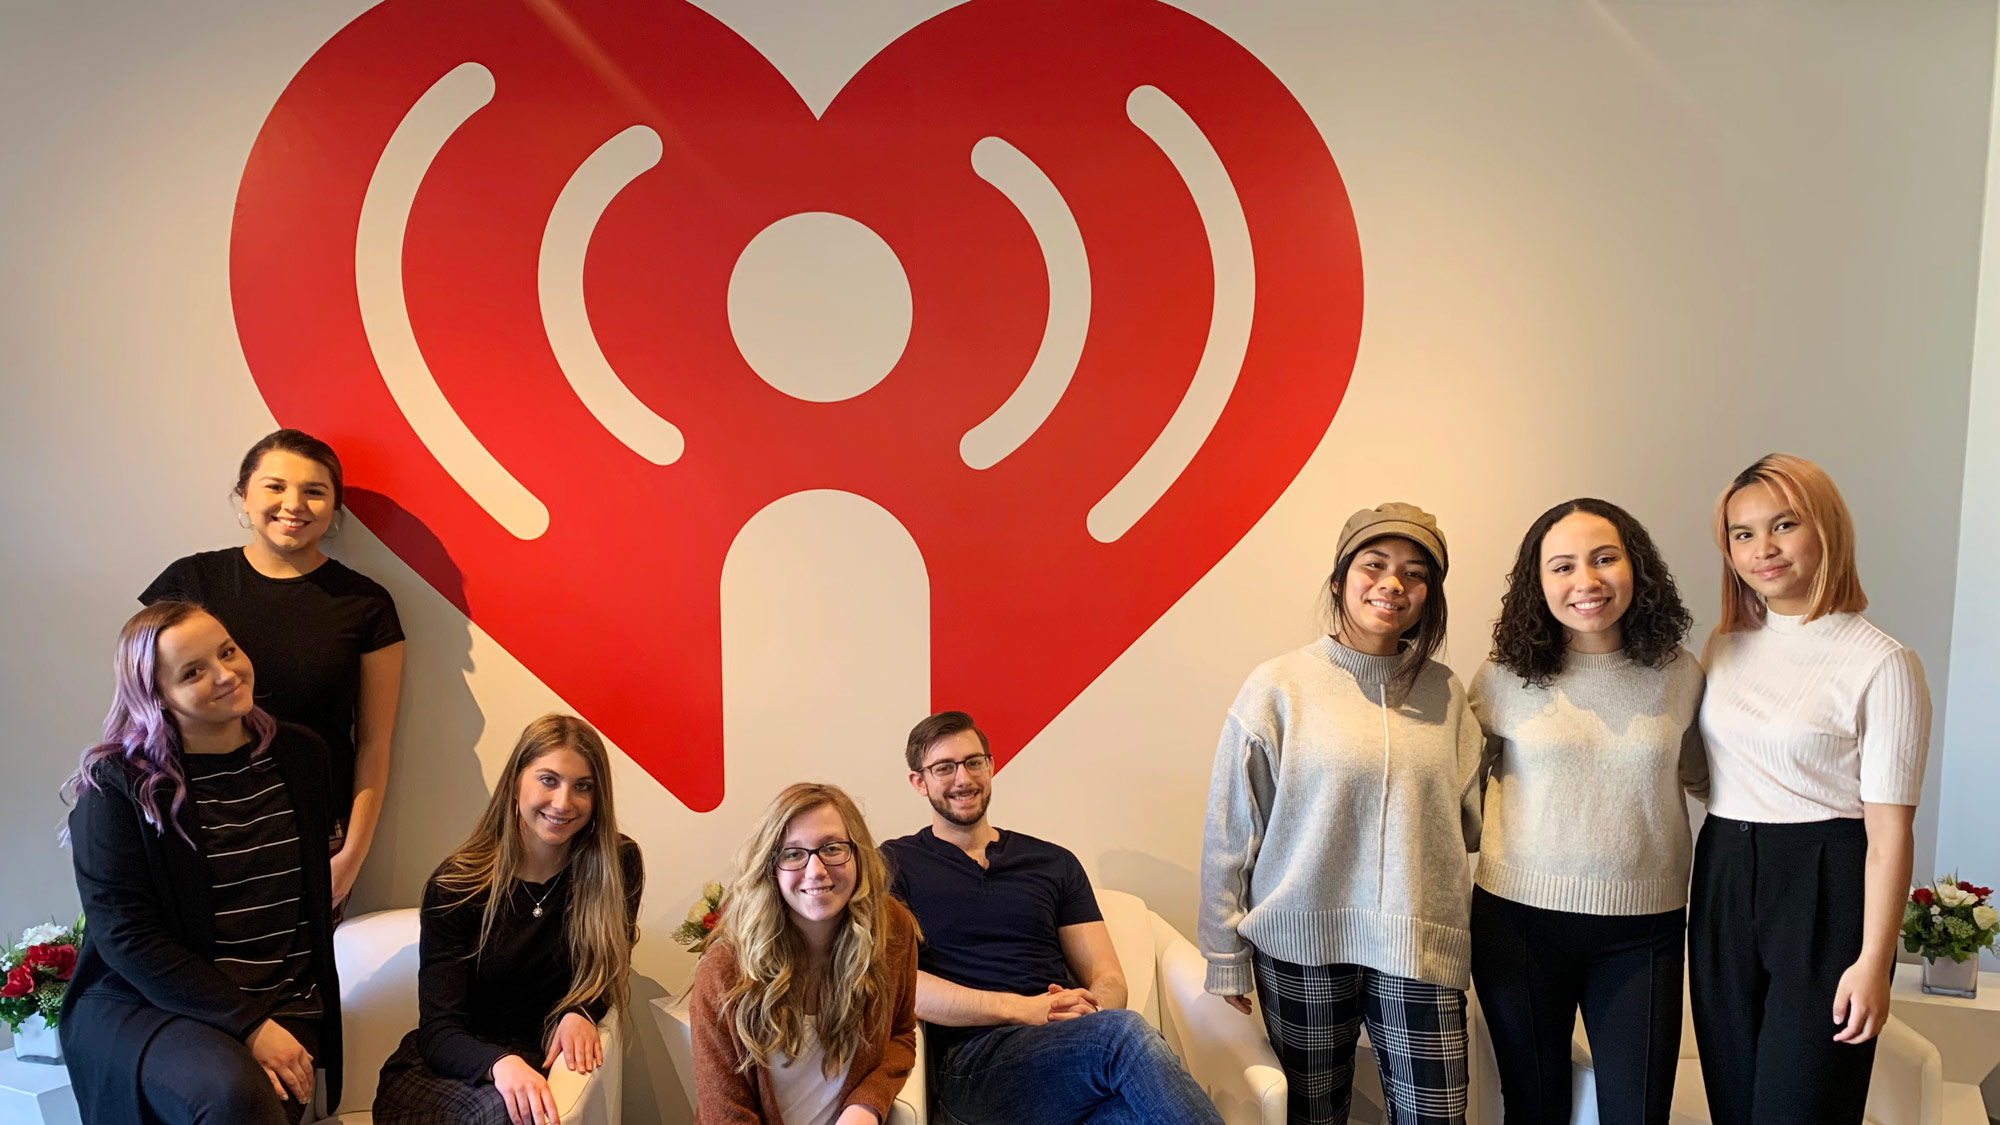 The Ad Society Visits iHeartRadio